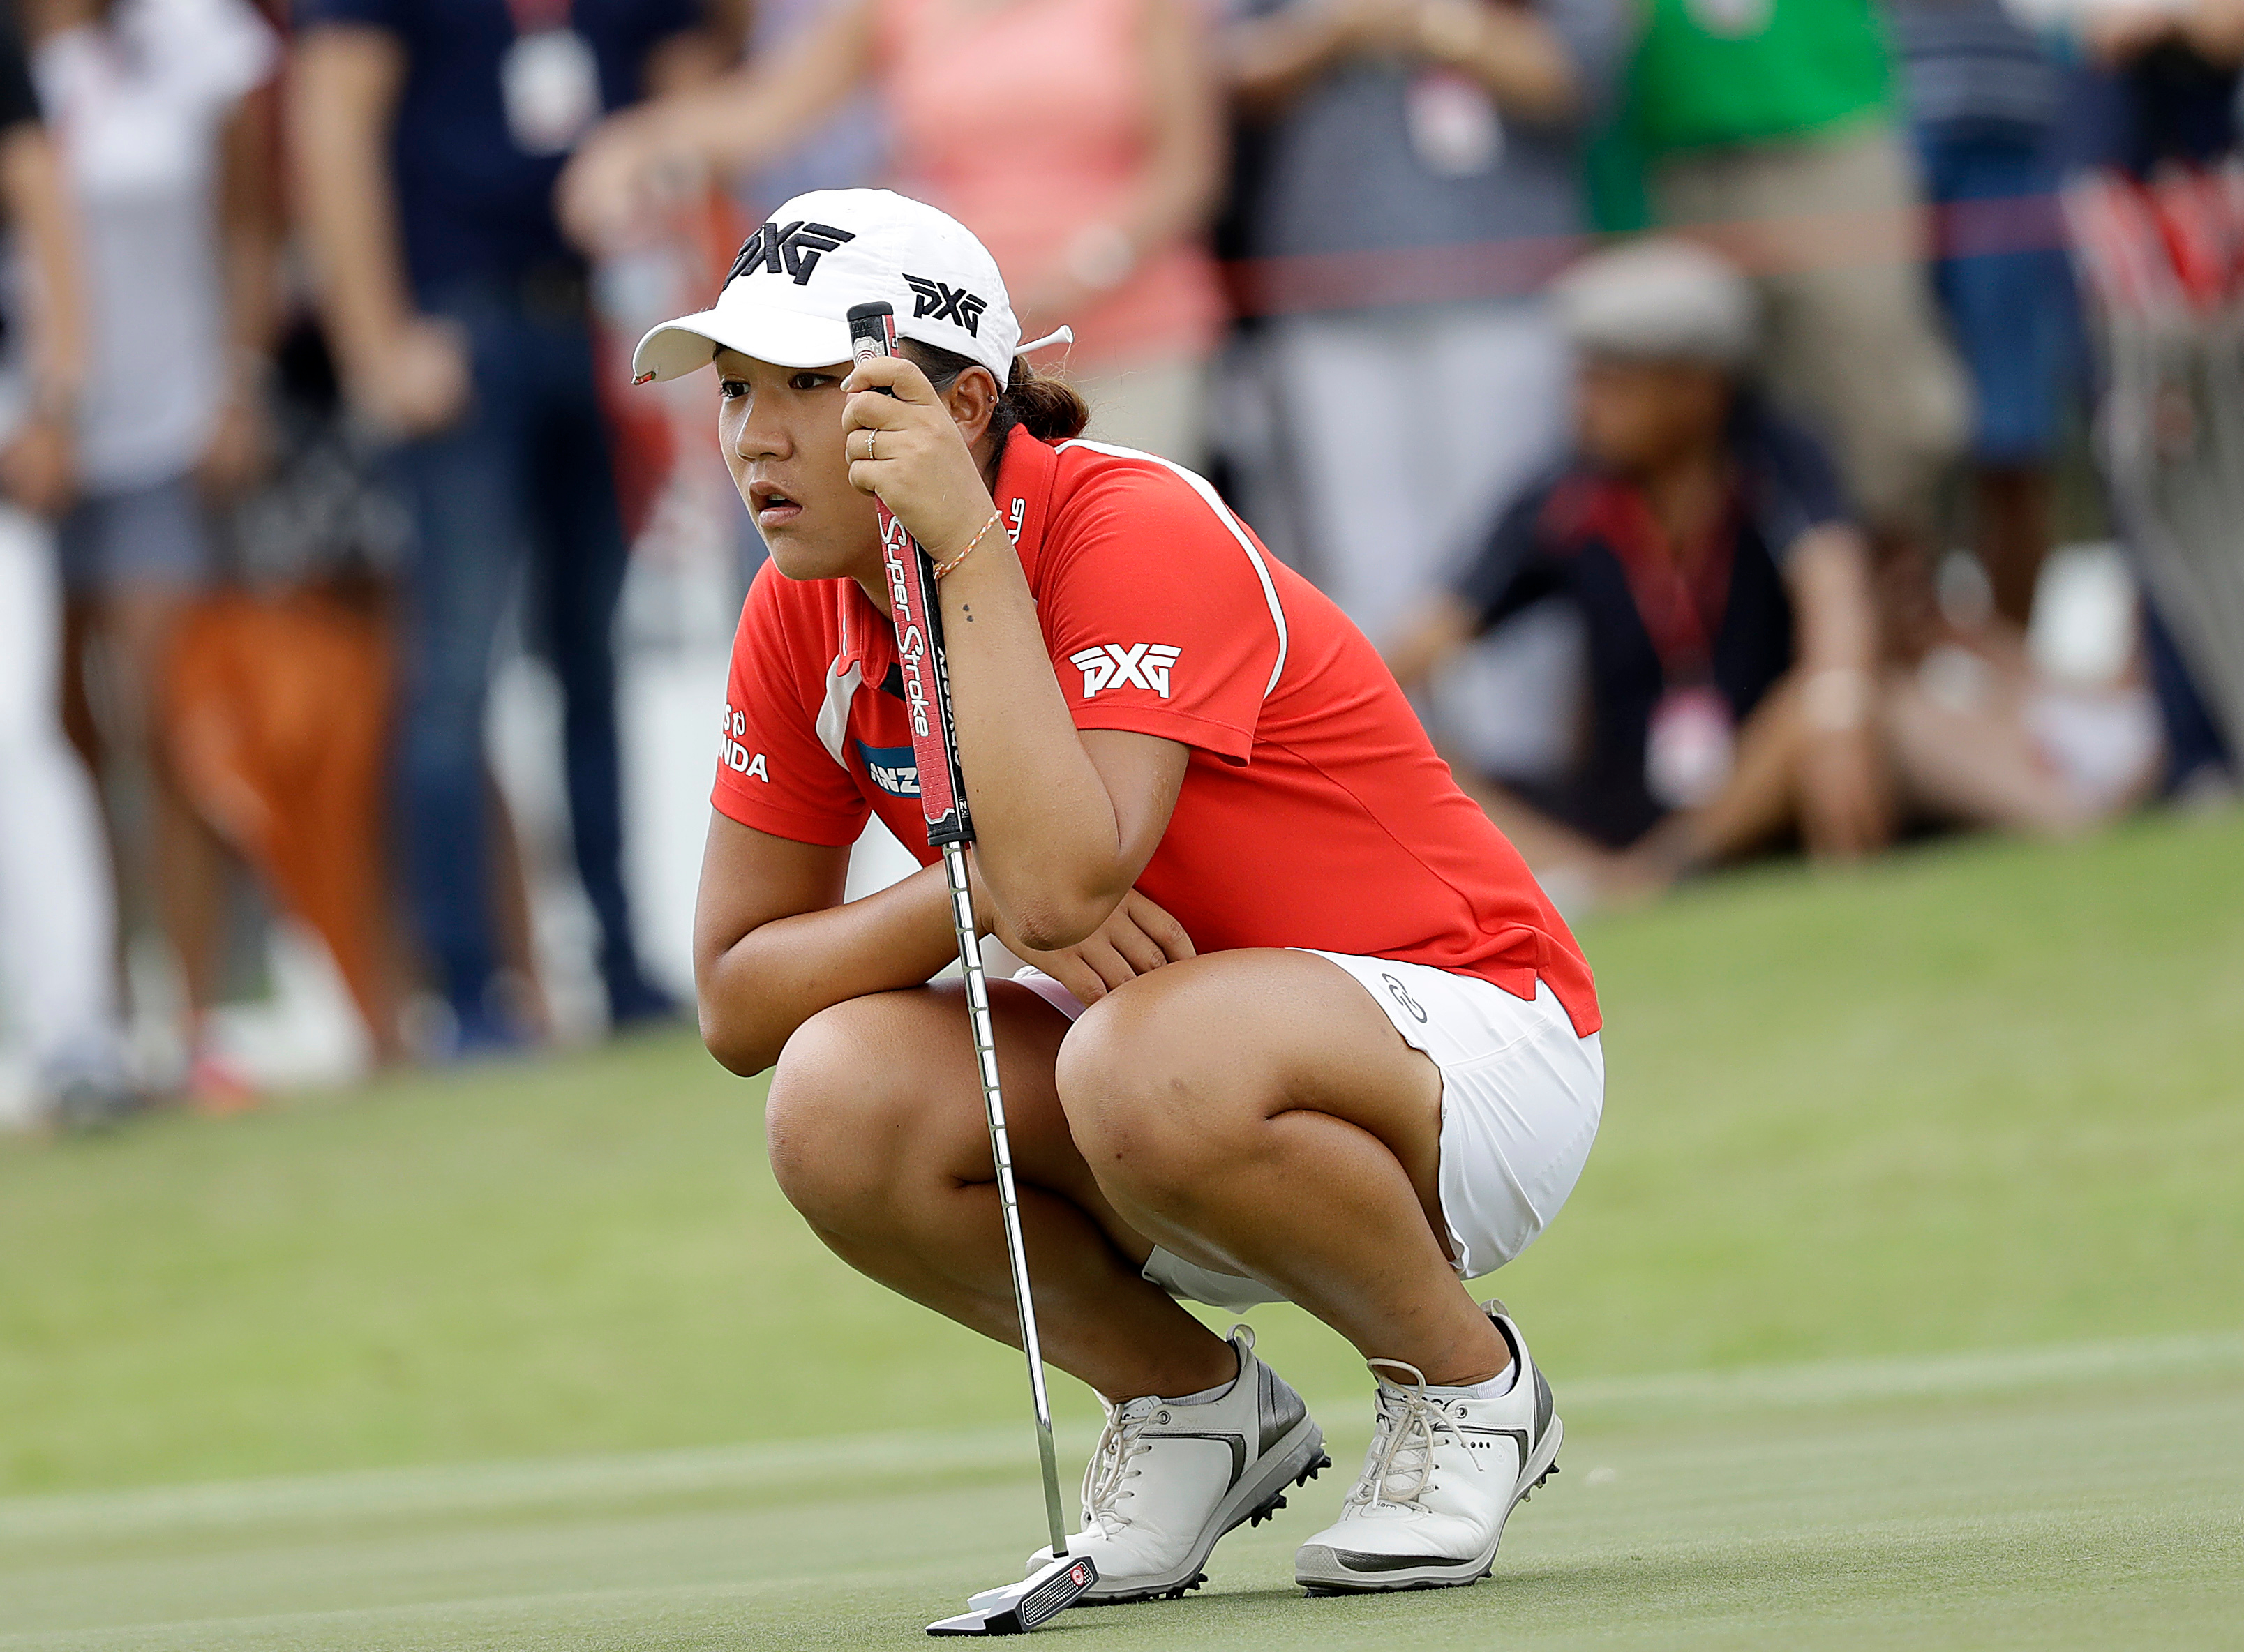 New Zealand's Lydia Kok, the world's No. 1-ranked player, hopes to get back on a winning roll when she returns to the ANA Inspiration this week. (AP Photo/Wong Maye-E)